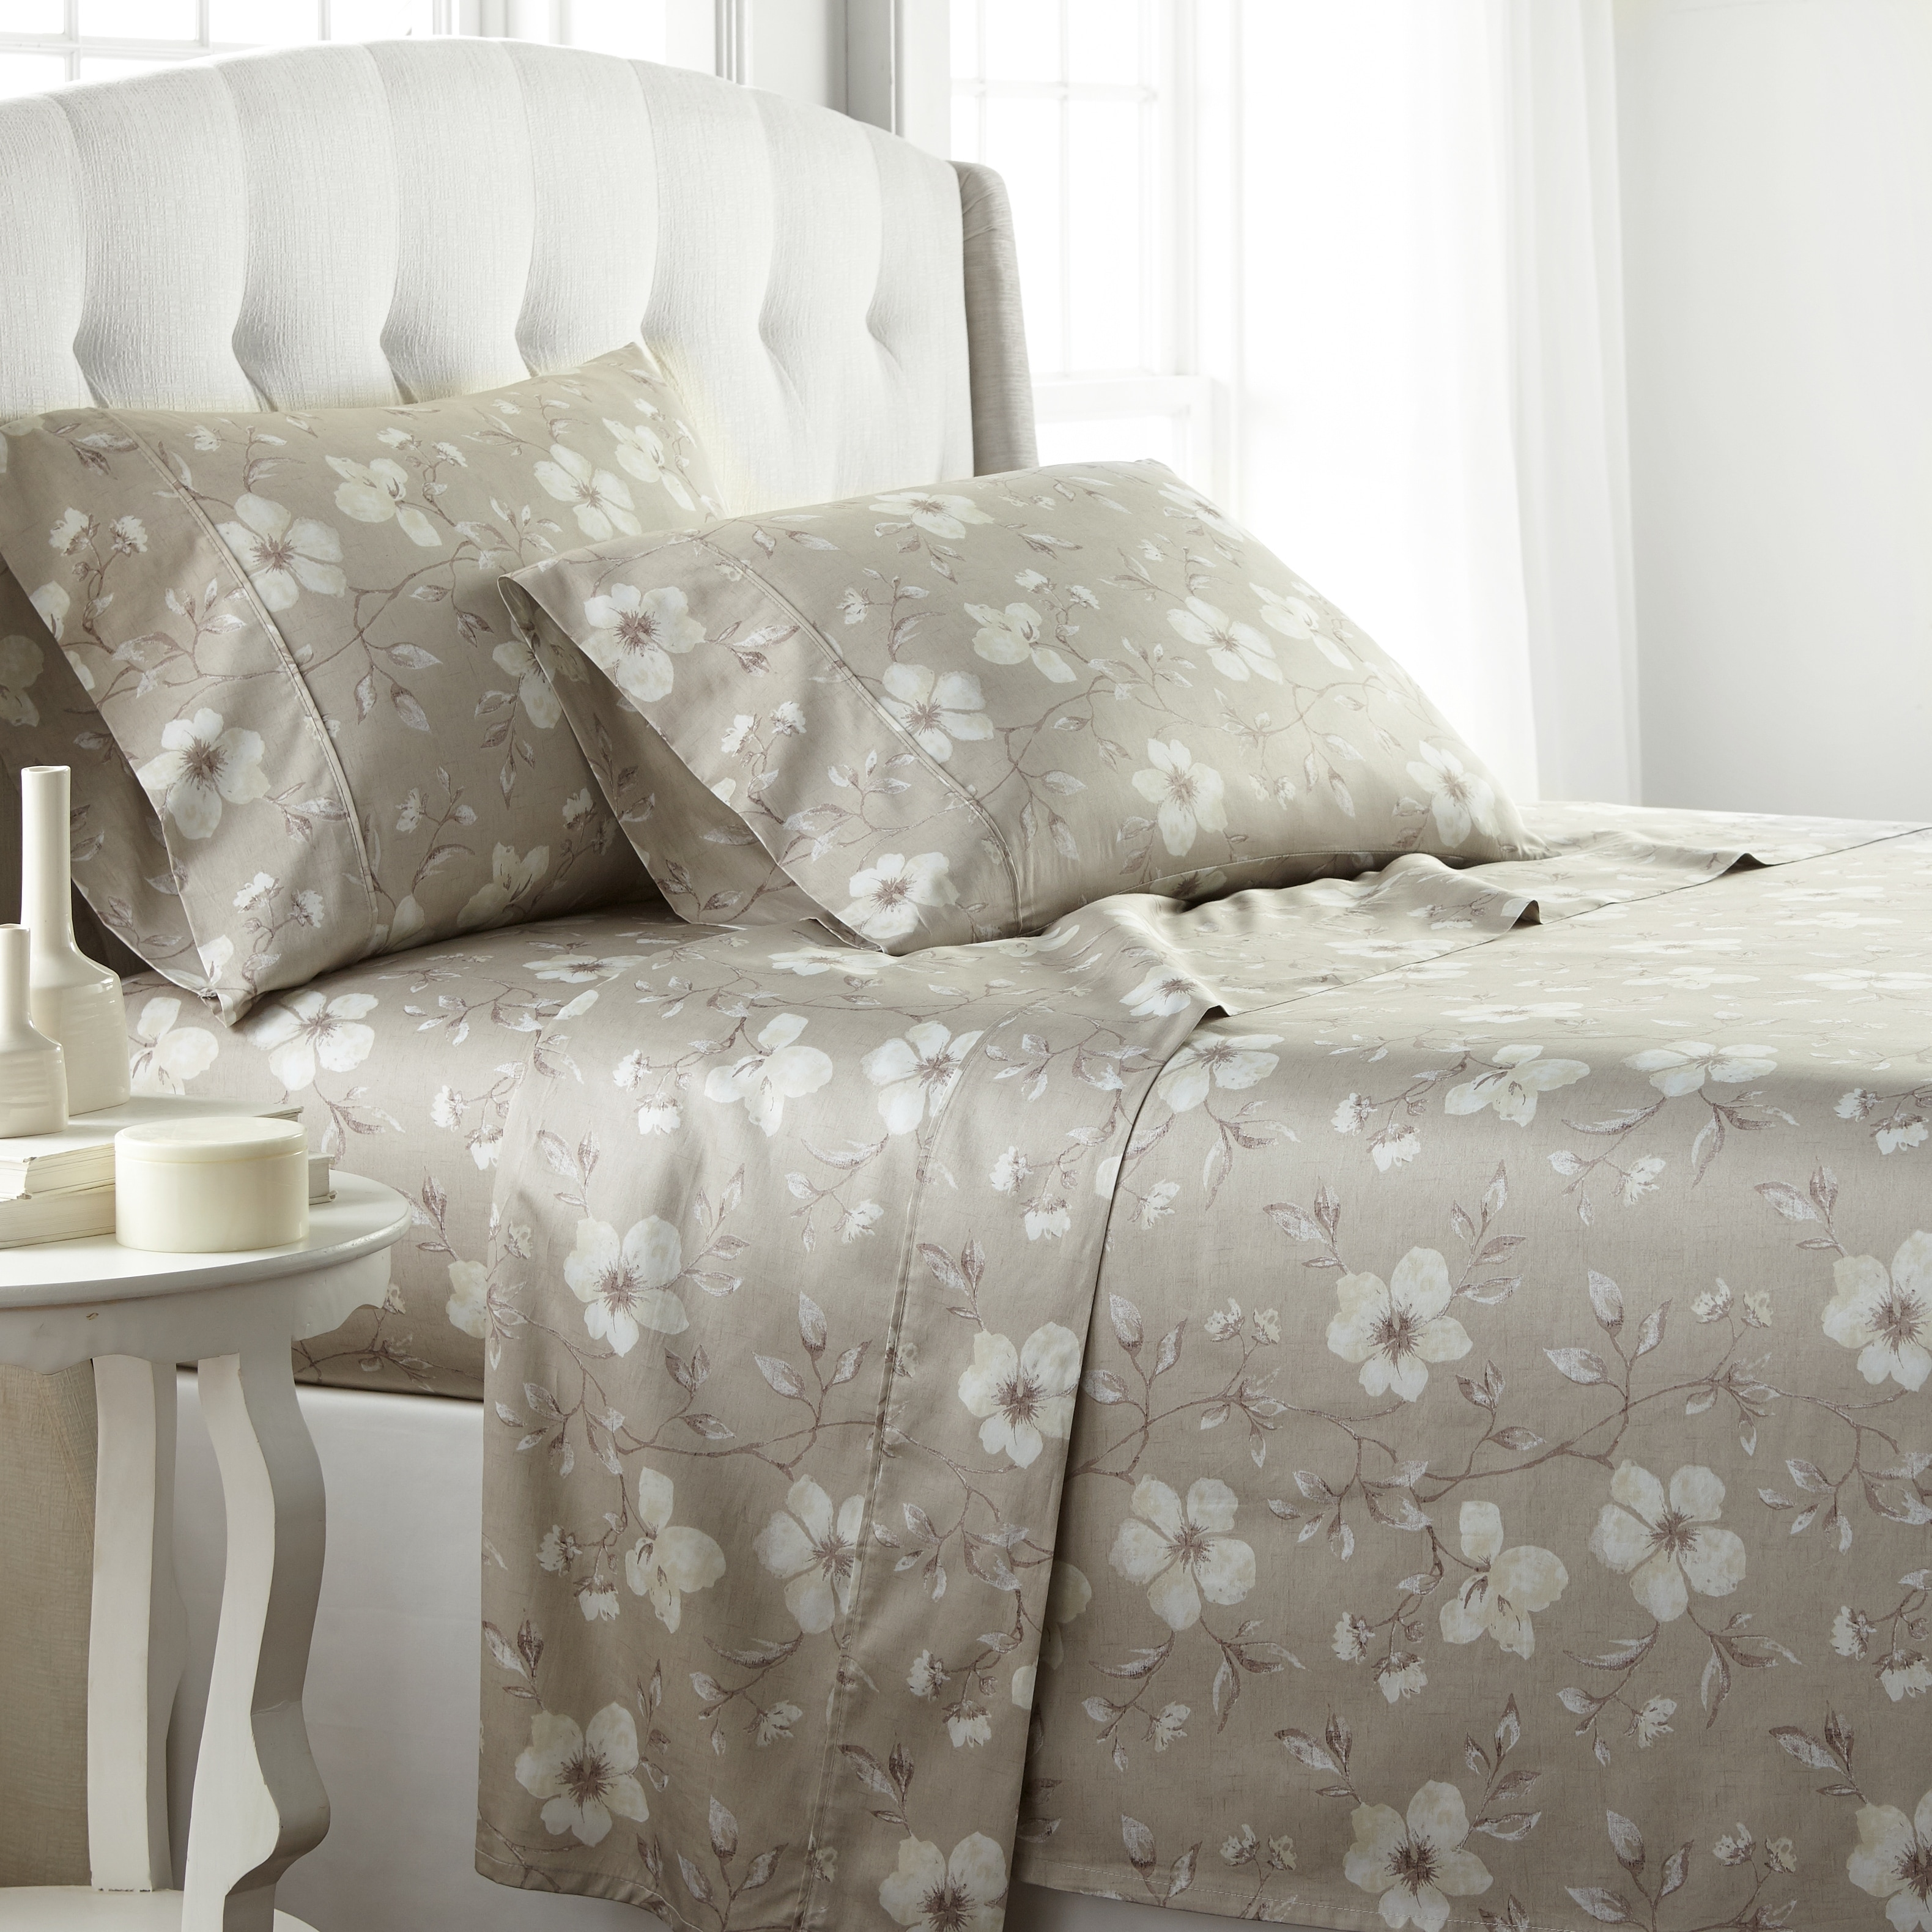 Extra Deep Pocket Bedding Collection 1200 TC Select Item /& Size Moss Solid